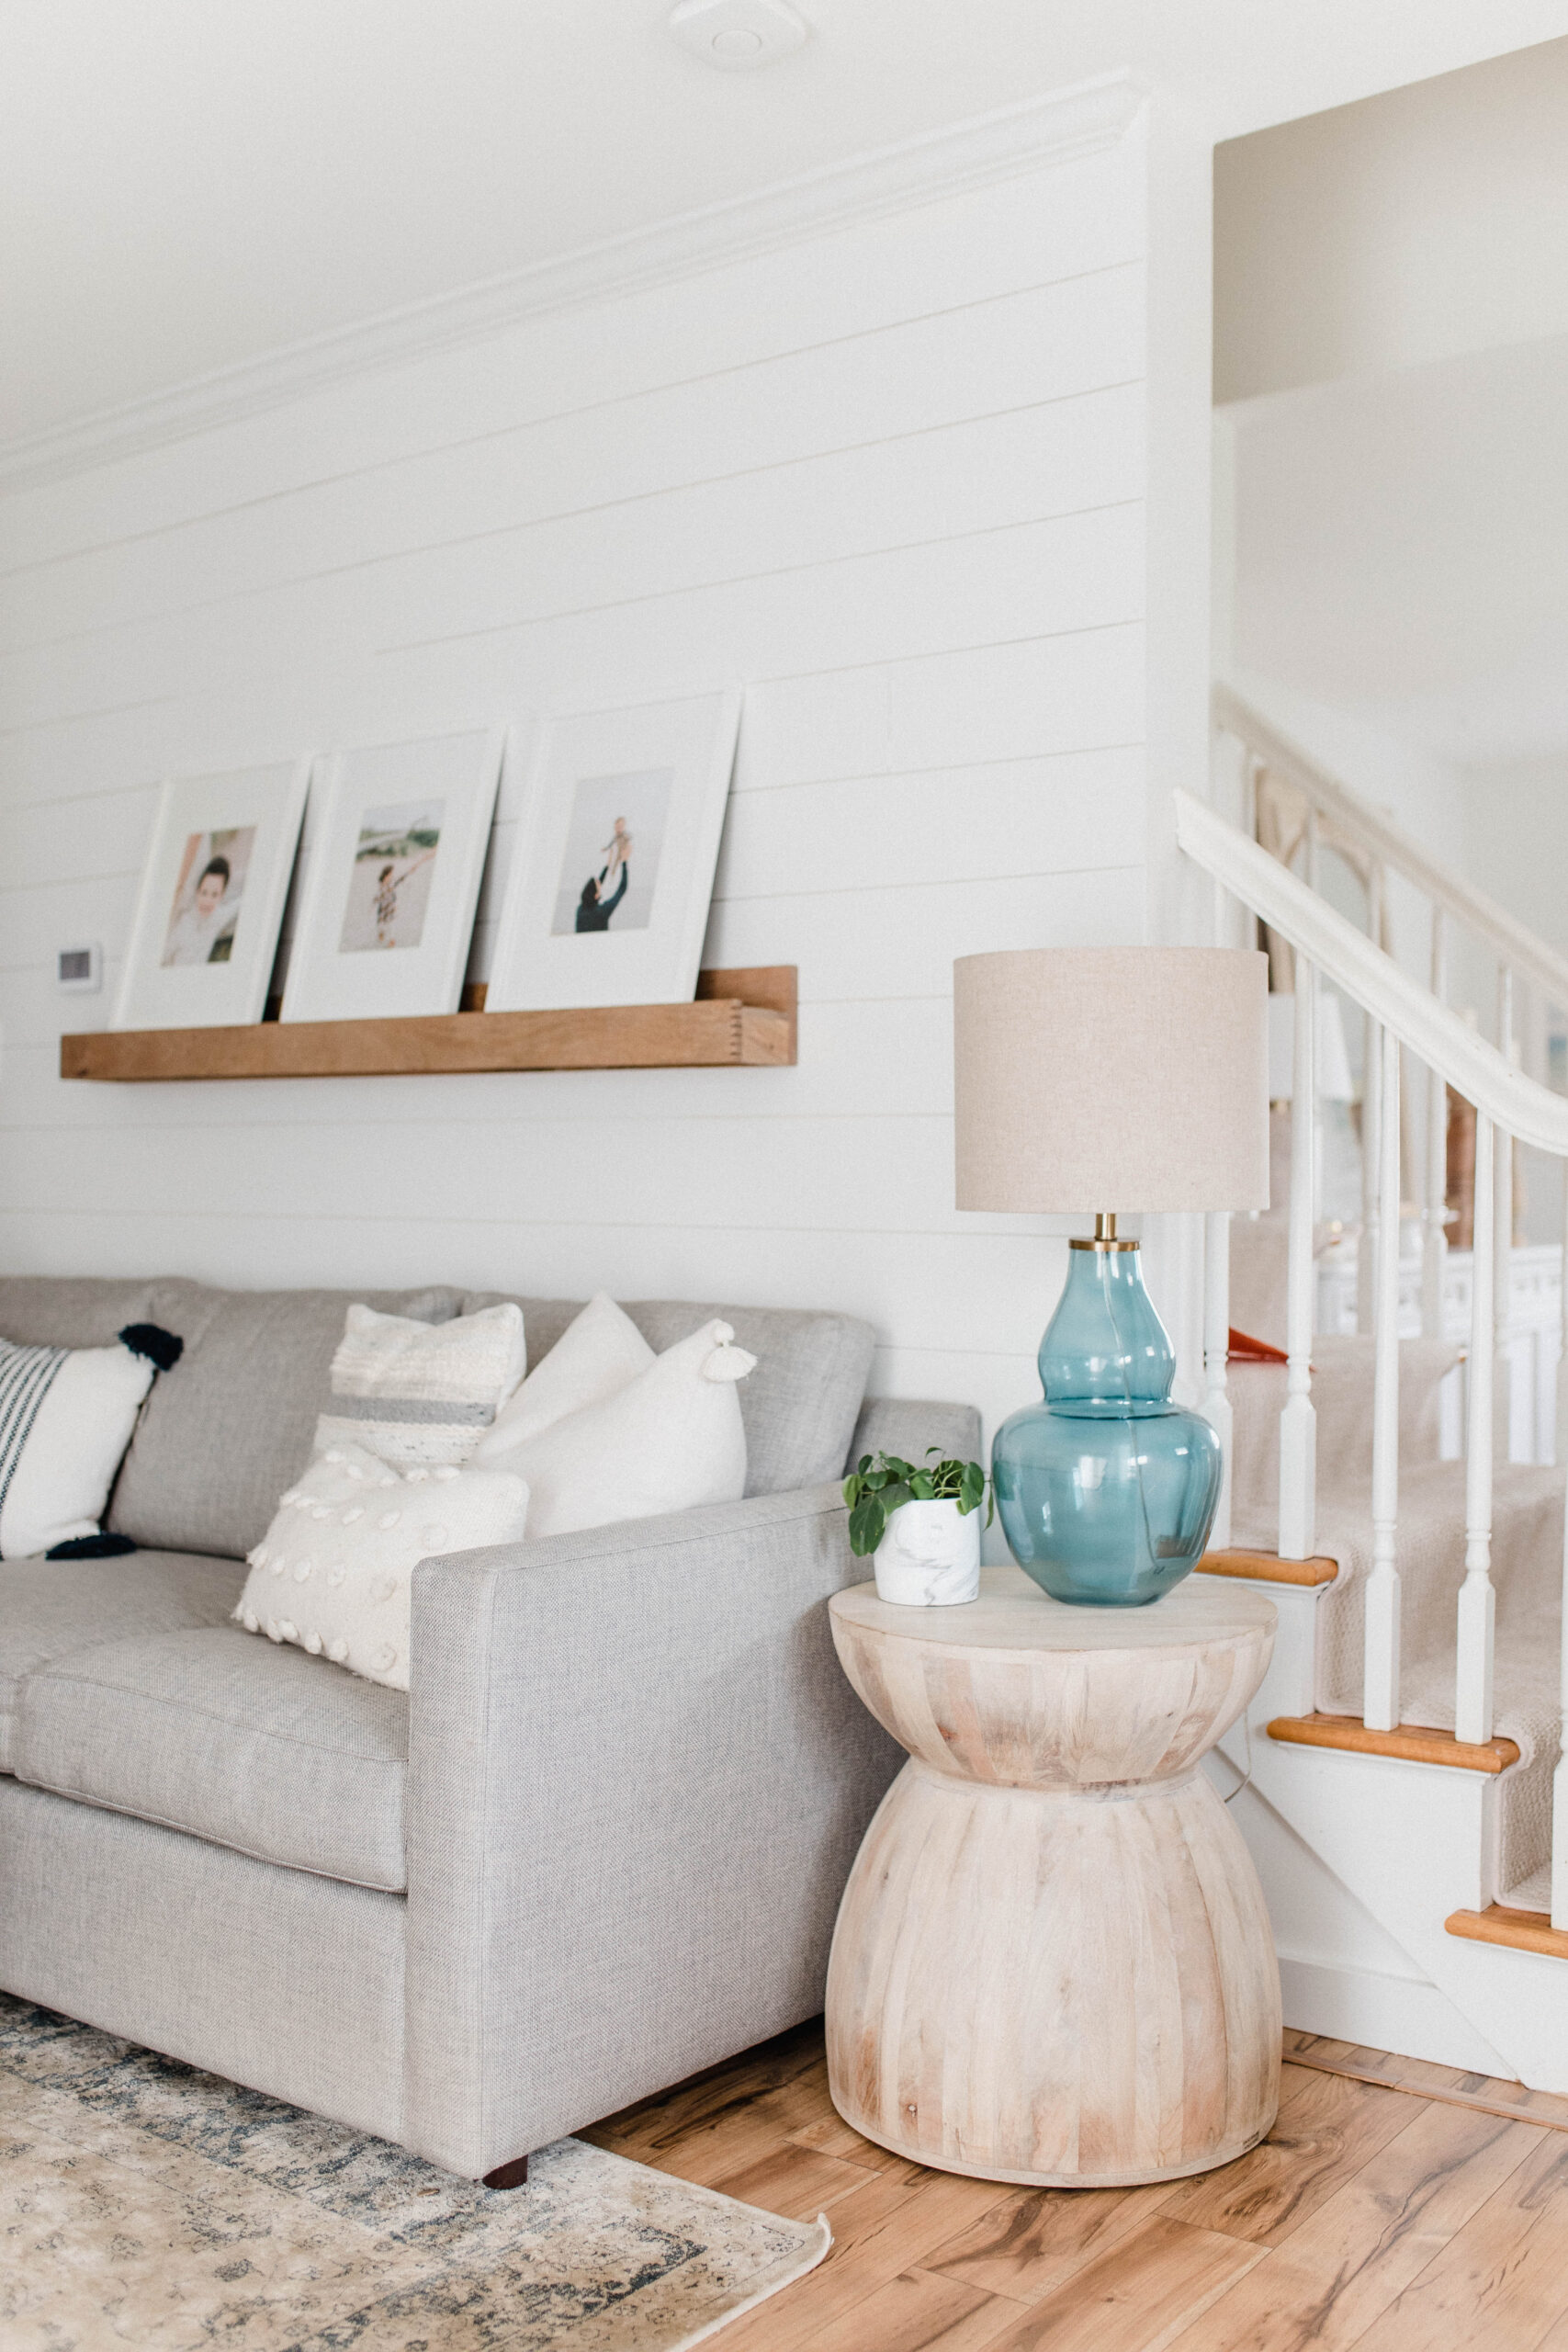 Connecticut life and style blogger Lauren McBride shares a home tour of her East Coast casual living room space, complete with source list.